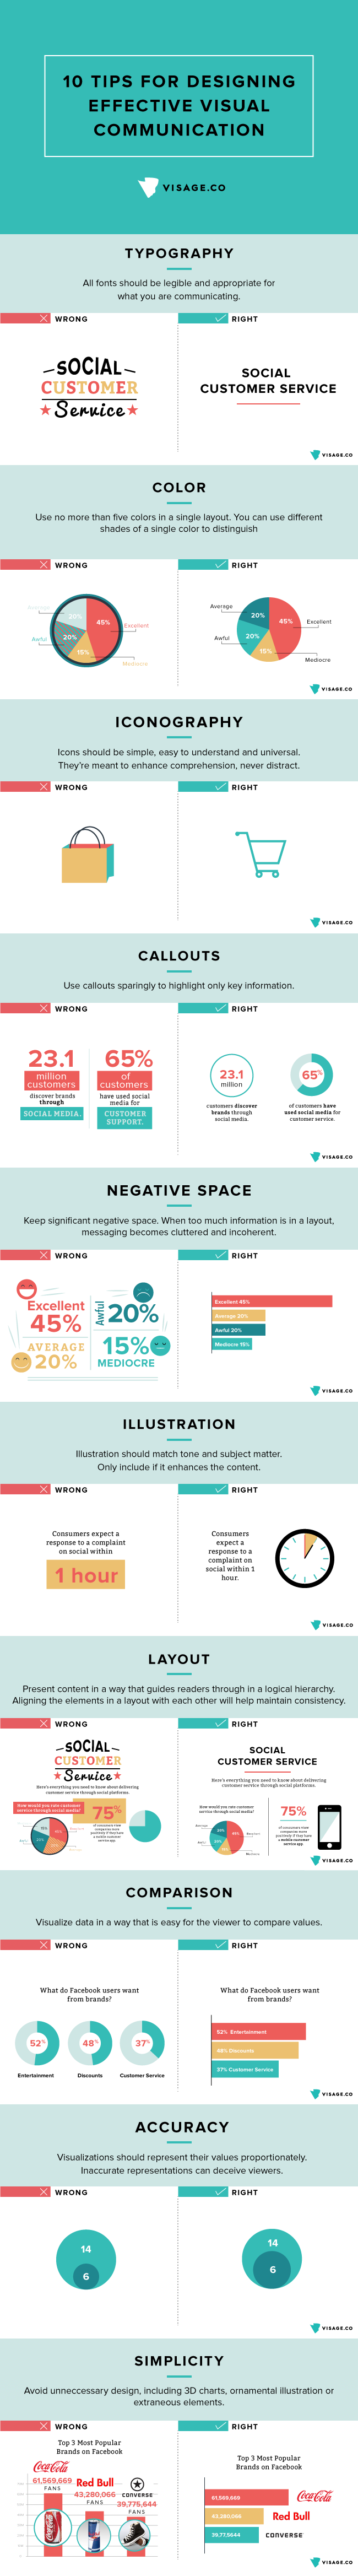 Designing Effective Visual Communication Infographic